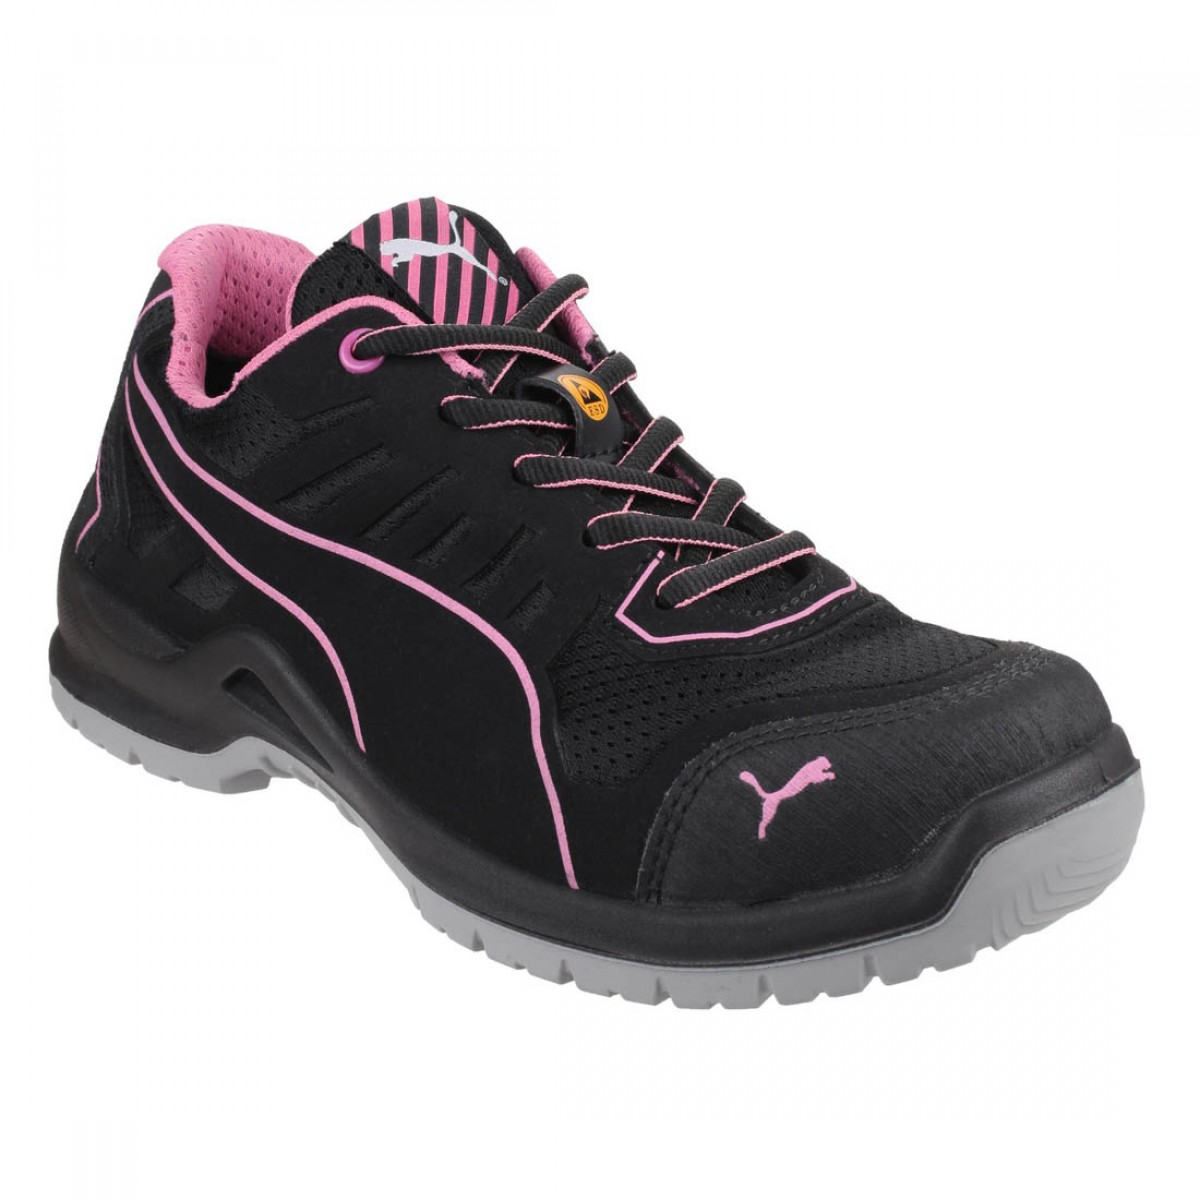 puma safety fuse technic black and pink womens safety work trainers. Black Bedroom Furniture Sets. Home Design Ideas